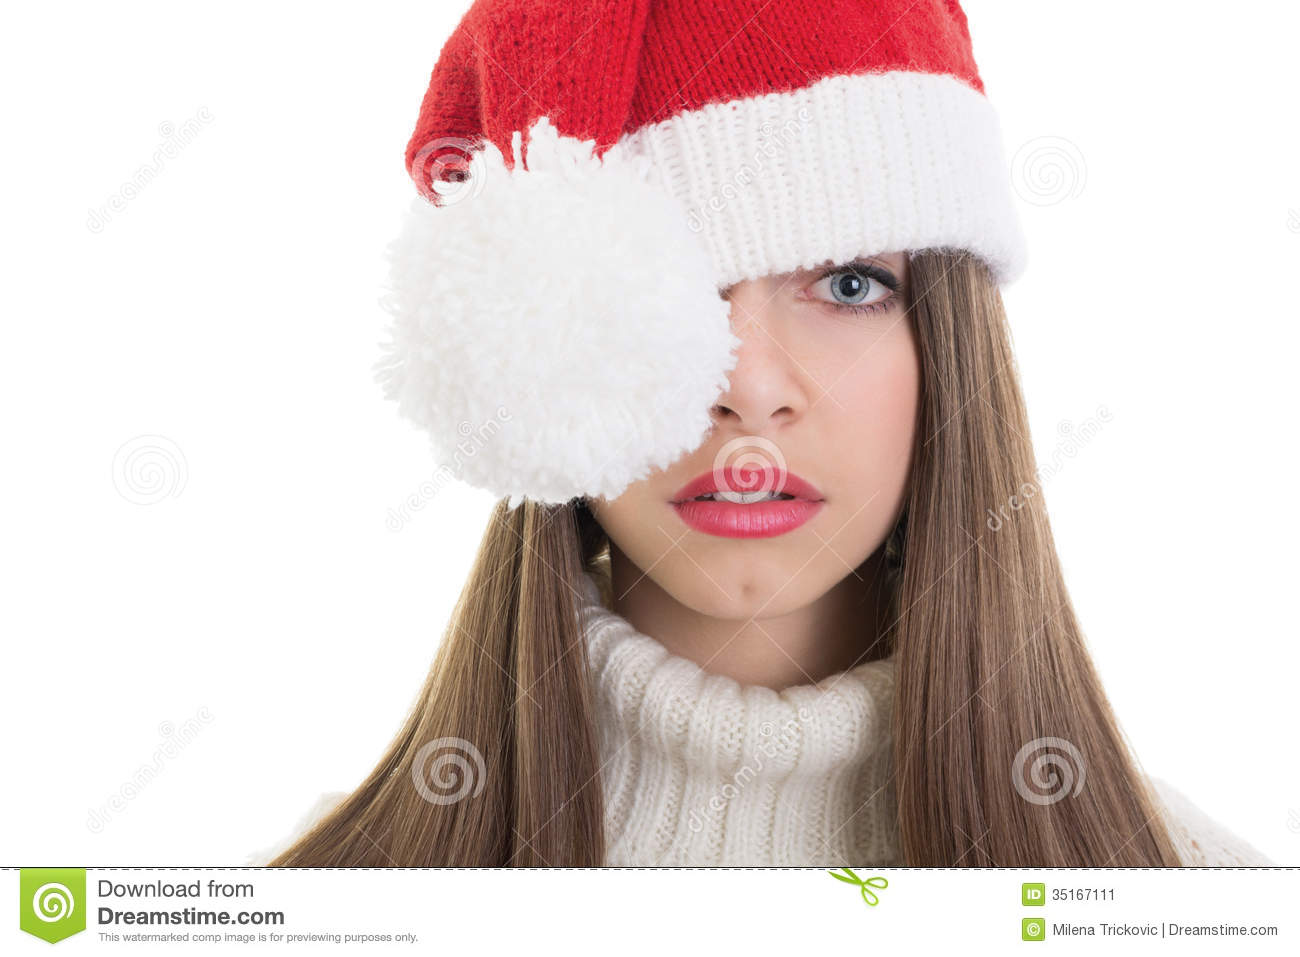 single lesbian women in santa Answer 1 of 170: hi, i'm ready to take the plunge and travel solo to get a decent r&r i would rather go with a group or tour at first to get used to it and prefer one out of the us and offering trips for those of us over 50 and single any thoughts.